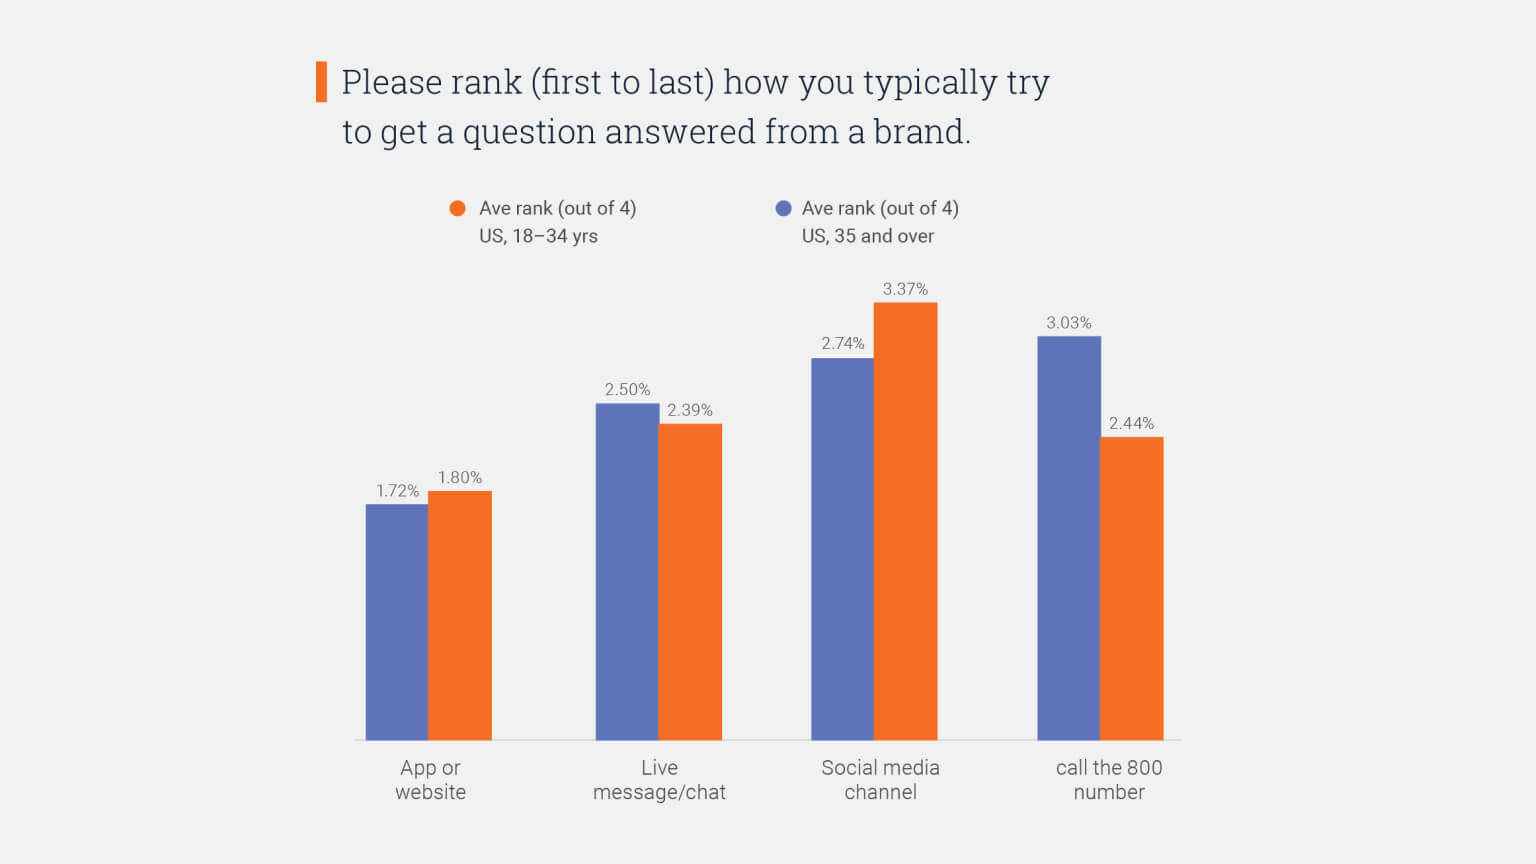 Graph: How different US generations try to get product questions answered.